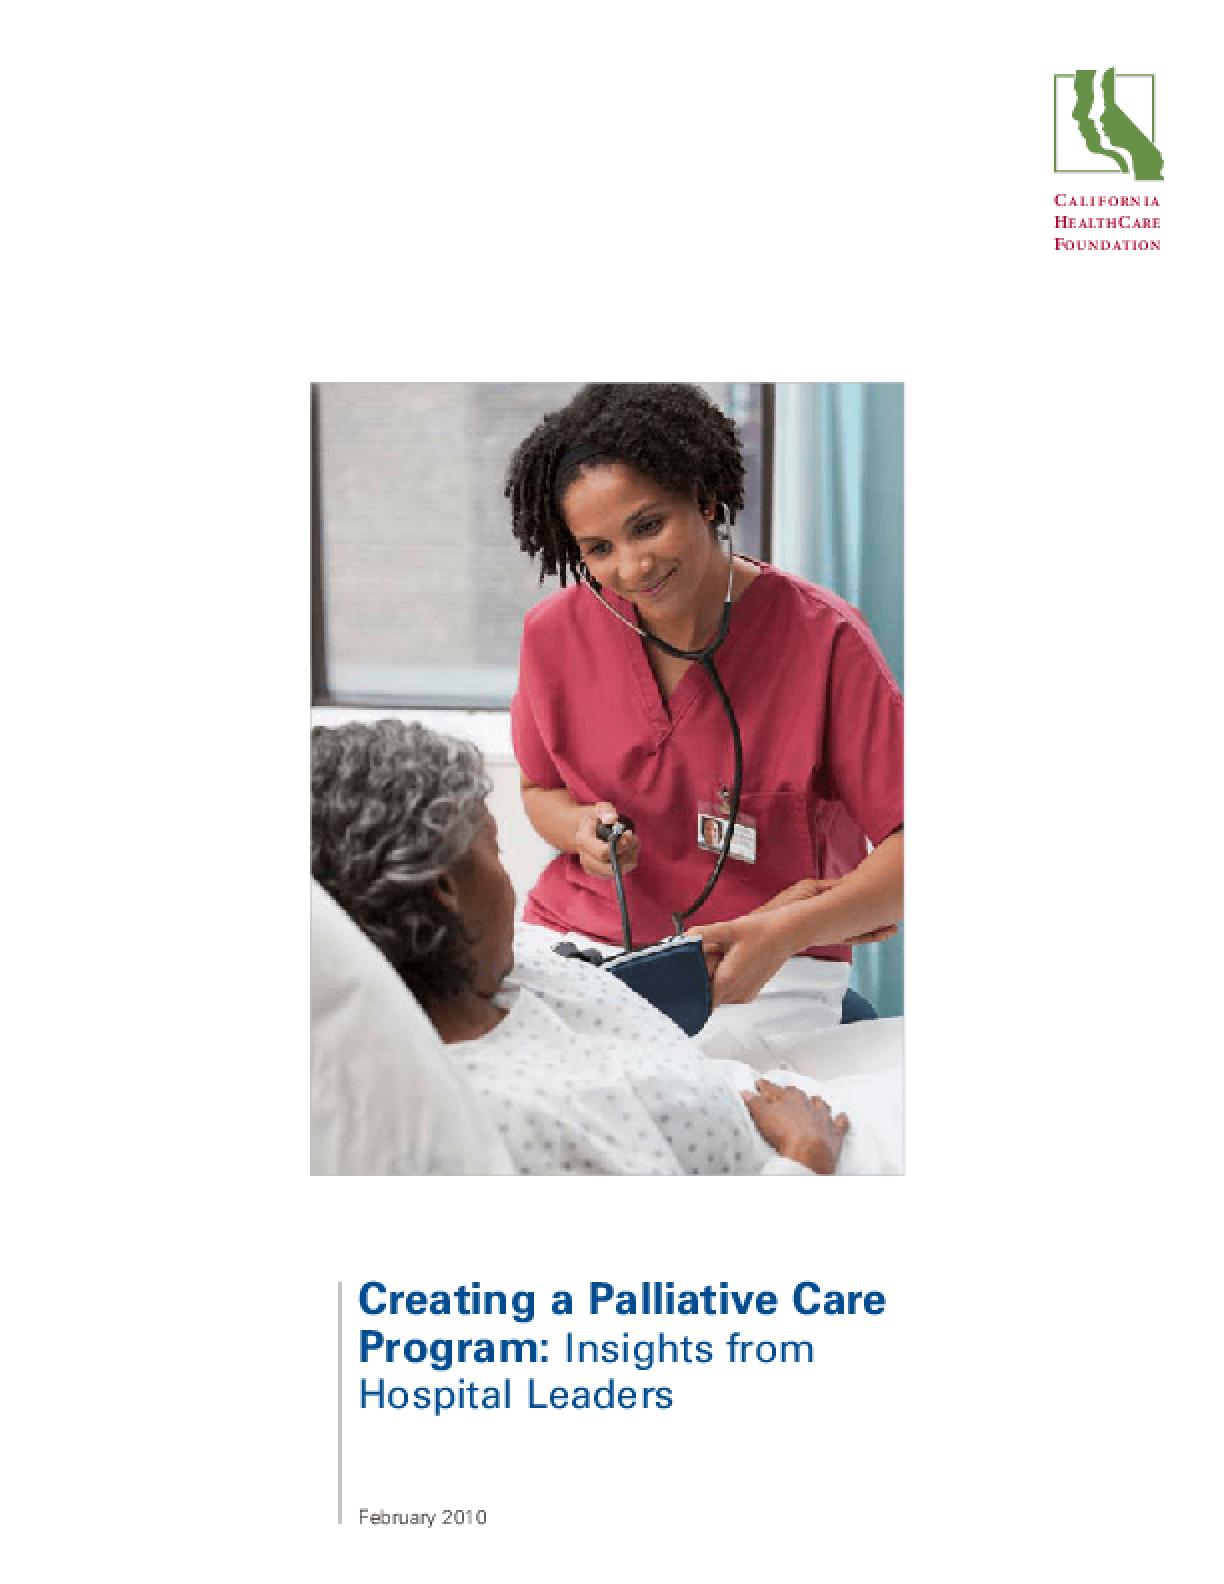 Creating a Palliative Care Program: Insights From Hospital Leaders